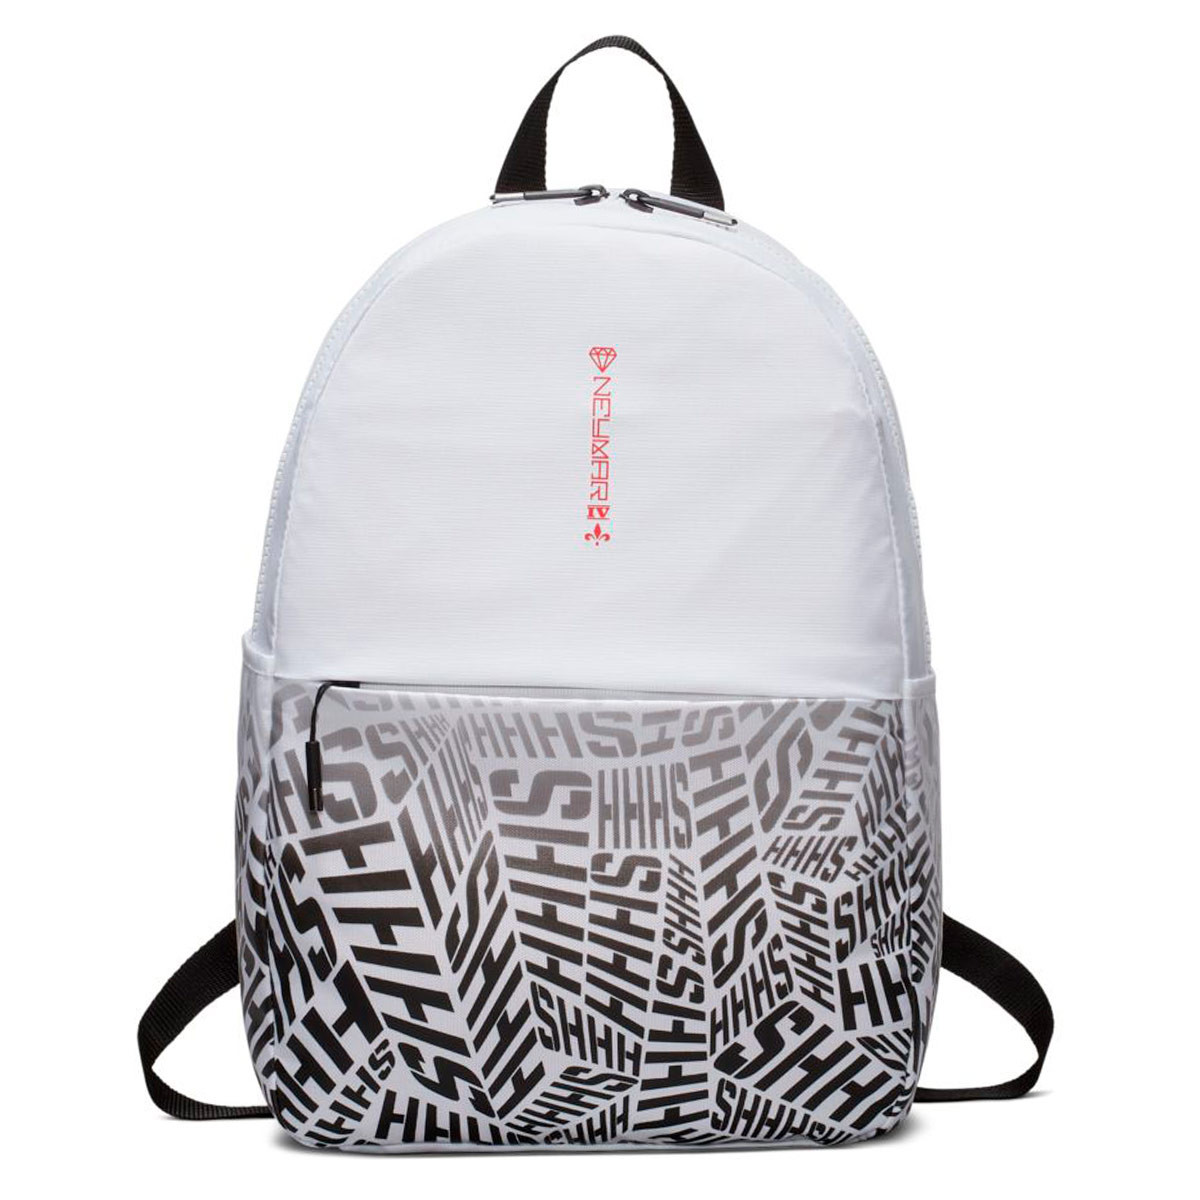 Cinemática Divertidísimo efecto  Backpack Nike Neymar Jr White-Black-Challenge red - Football store Fútbol  Emotion